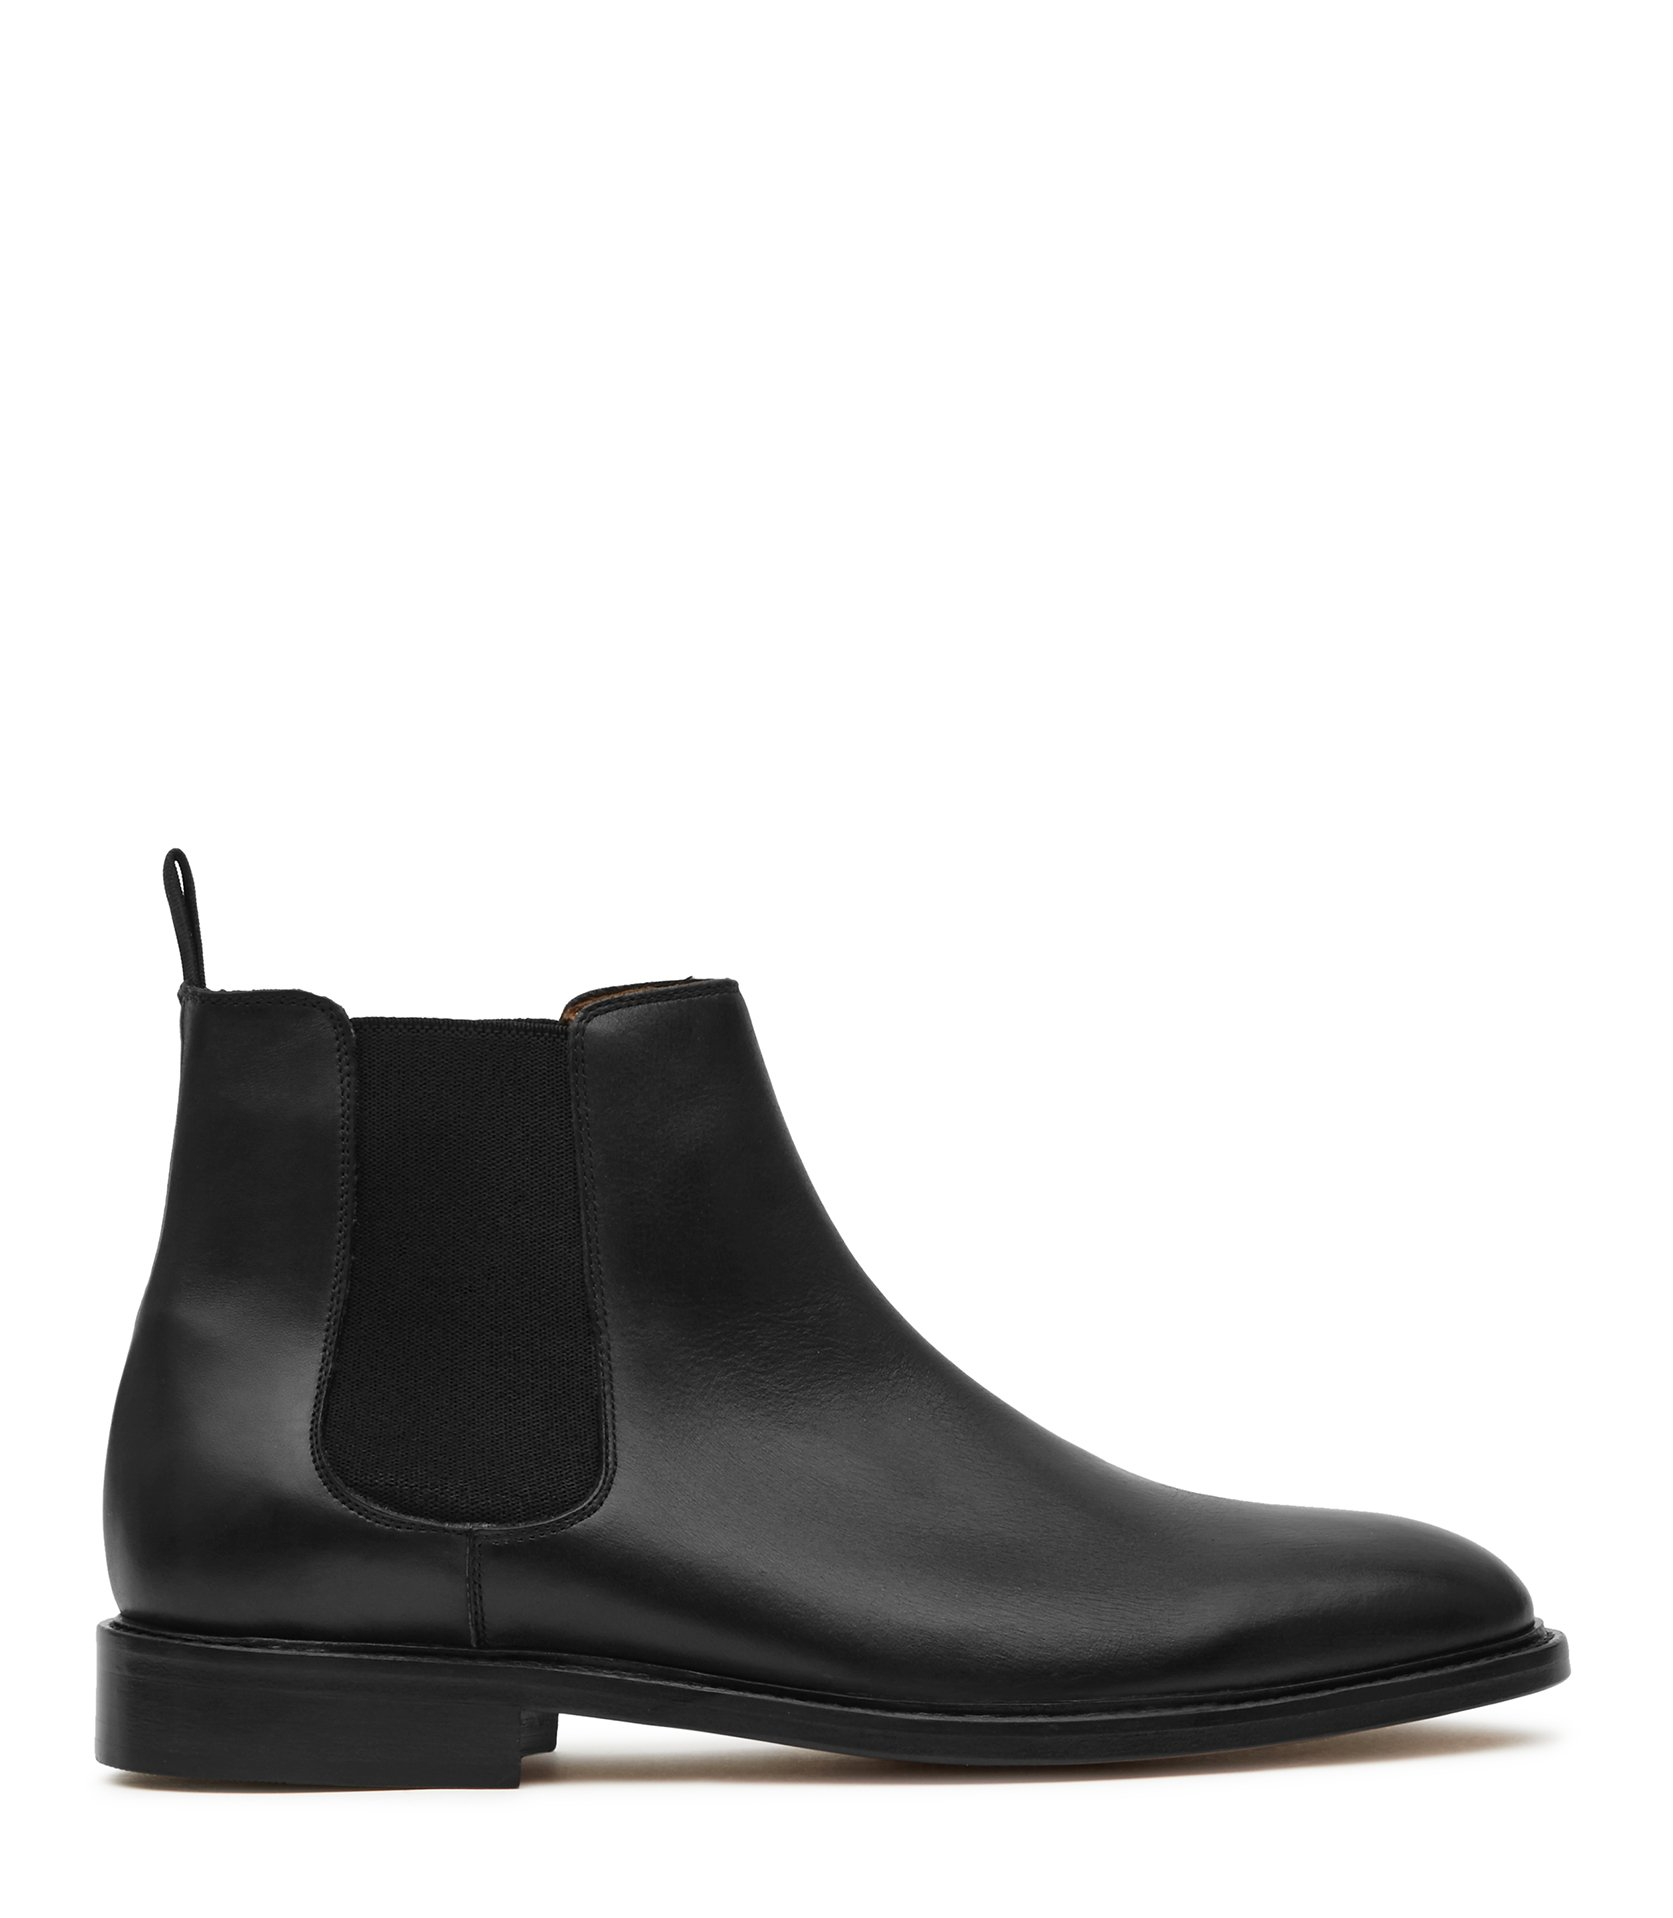 Reiss Black Tenor Leather Leather Chelsea Boots